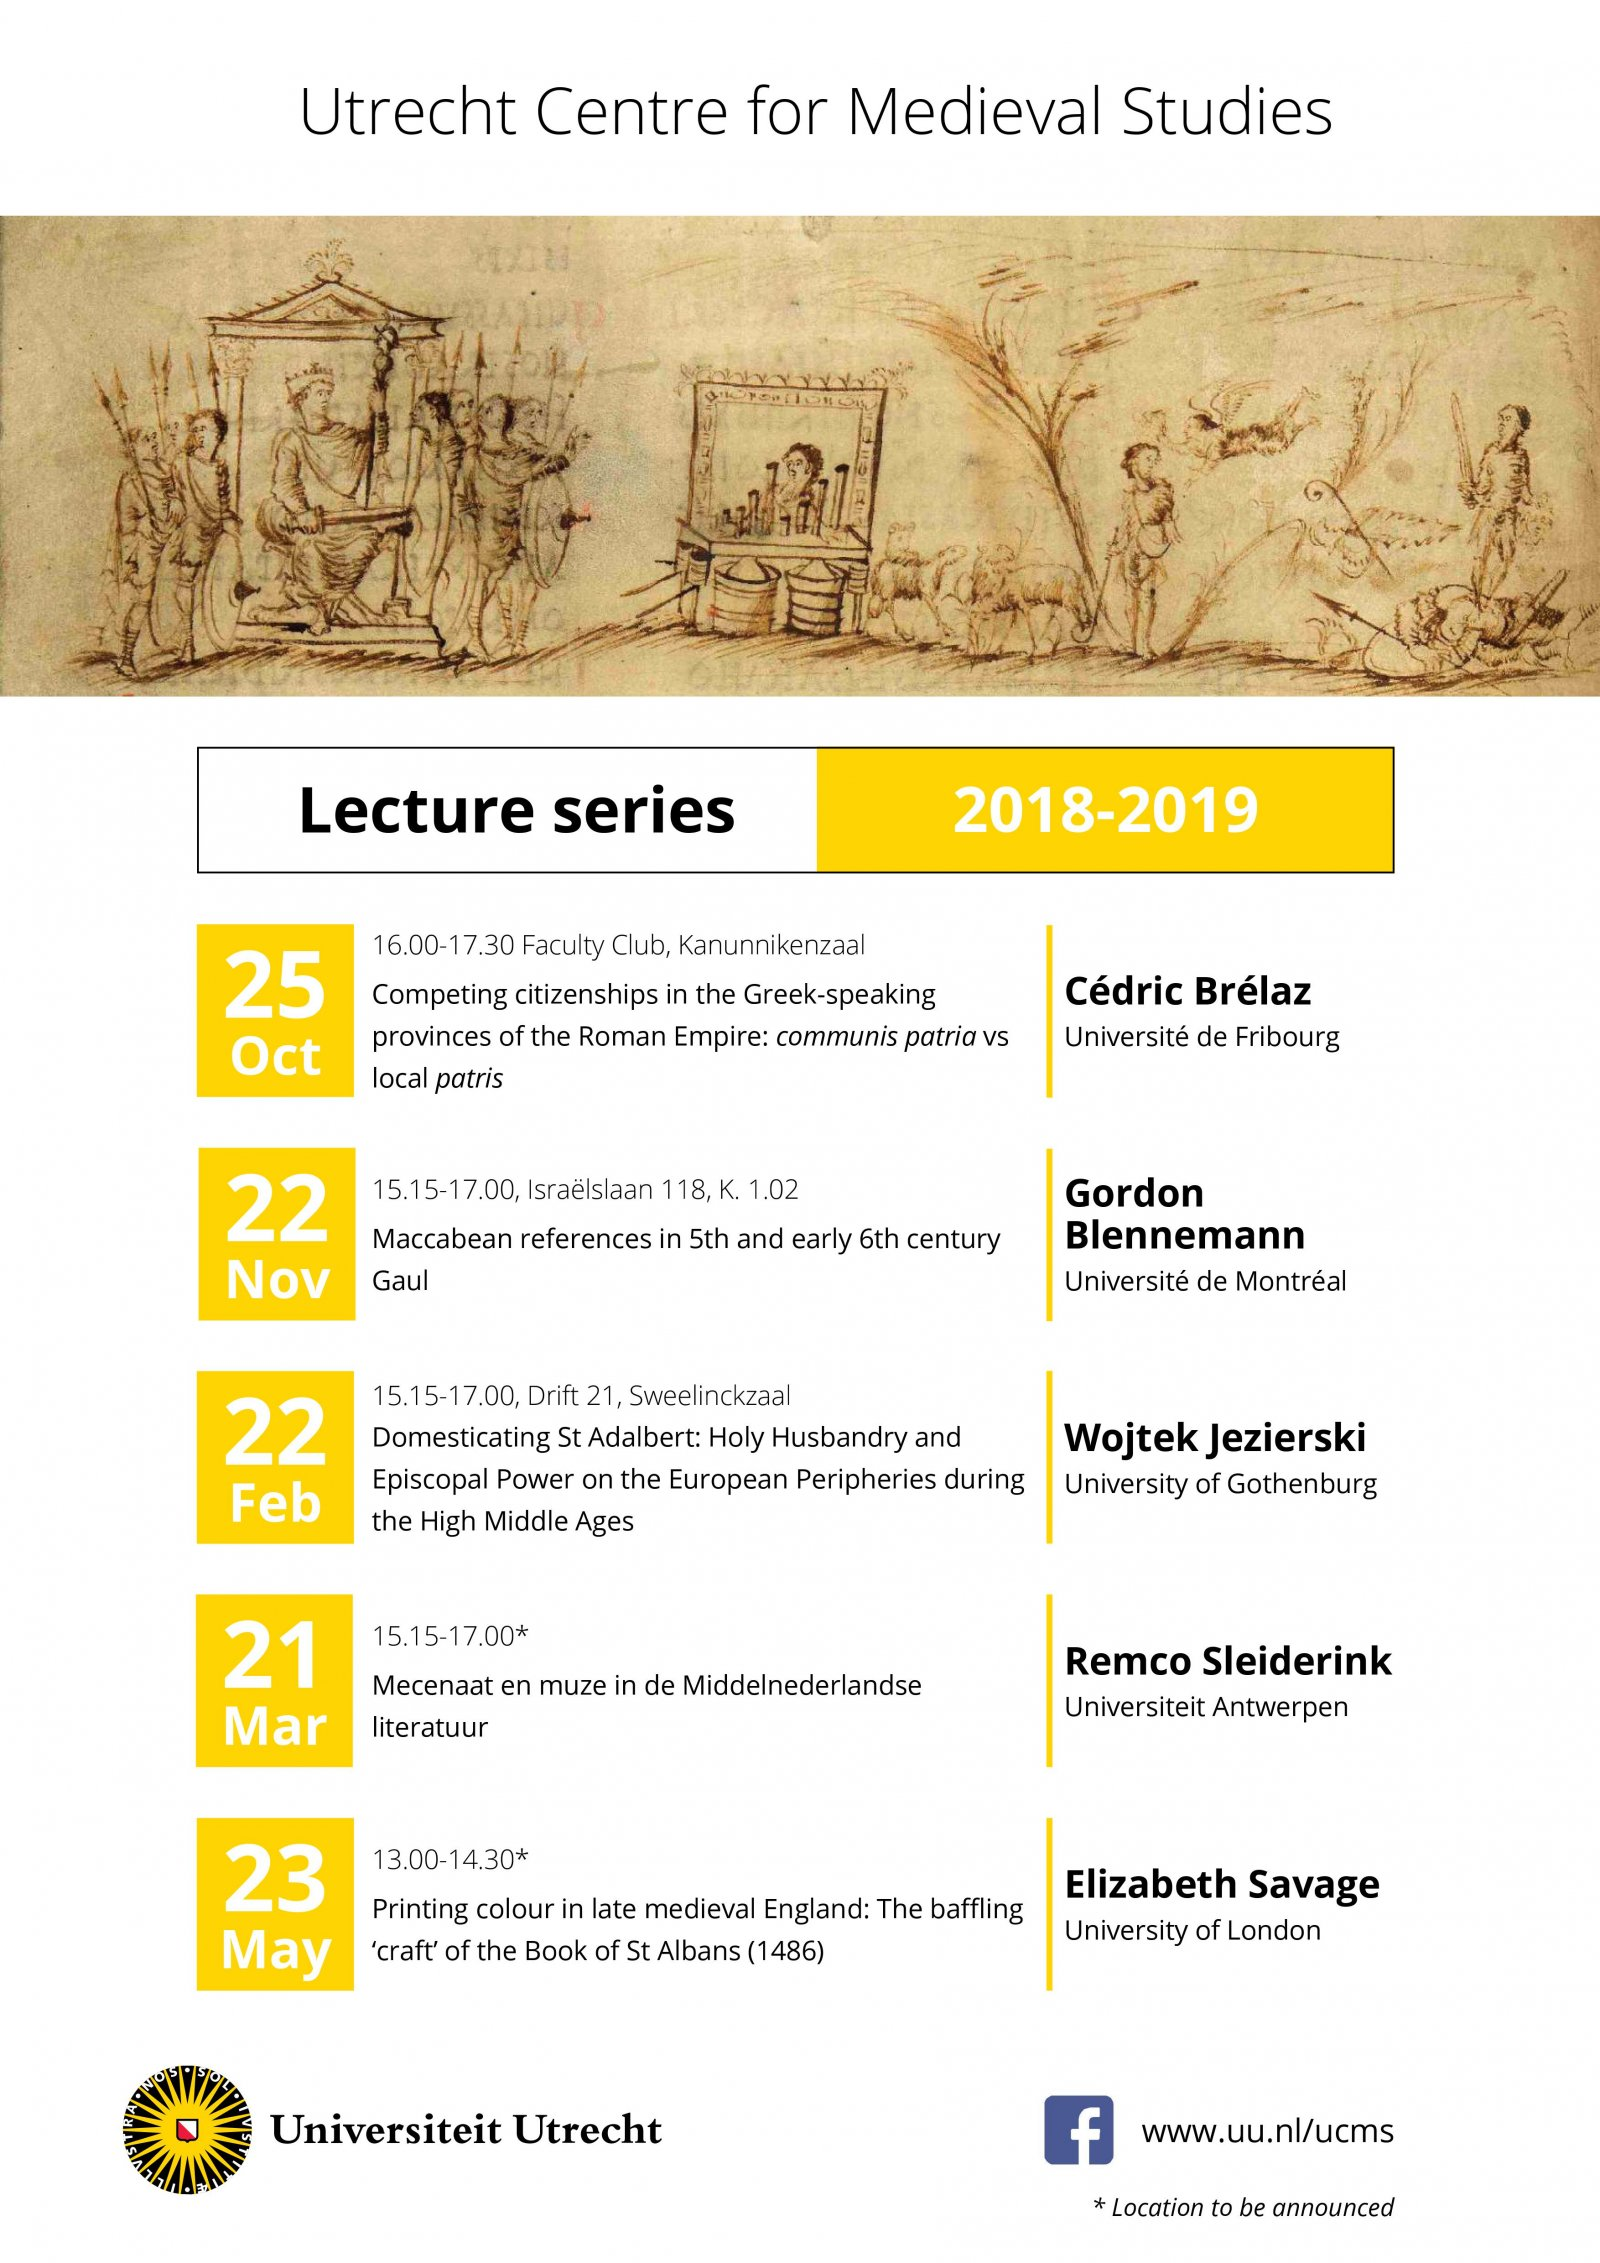 UCMS lecture series 2018-2019